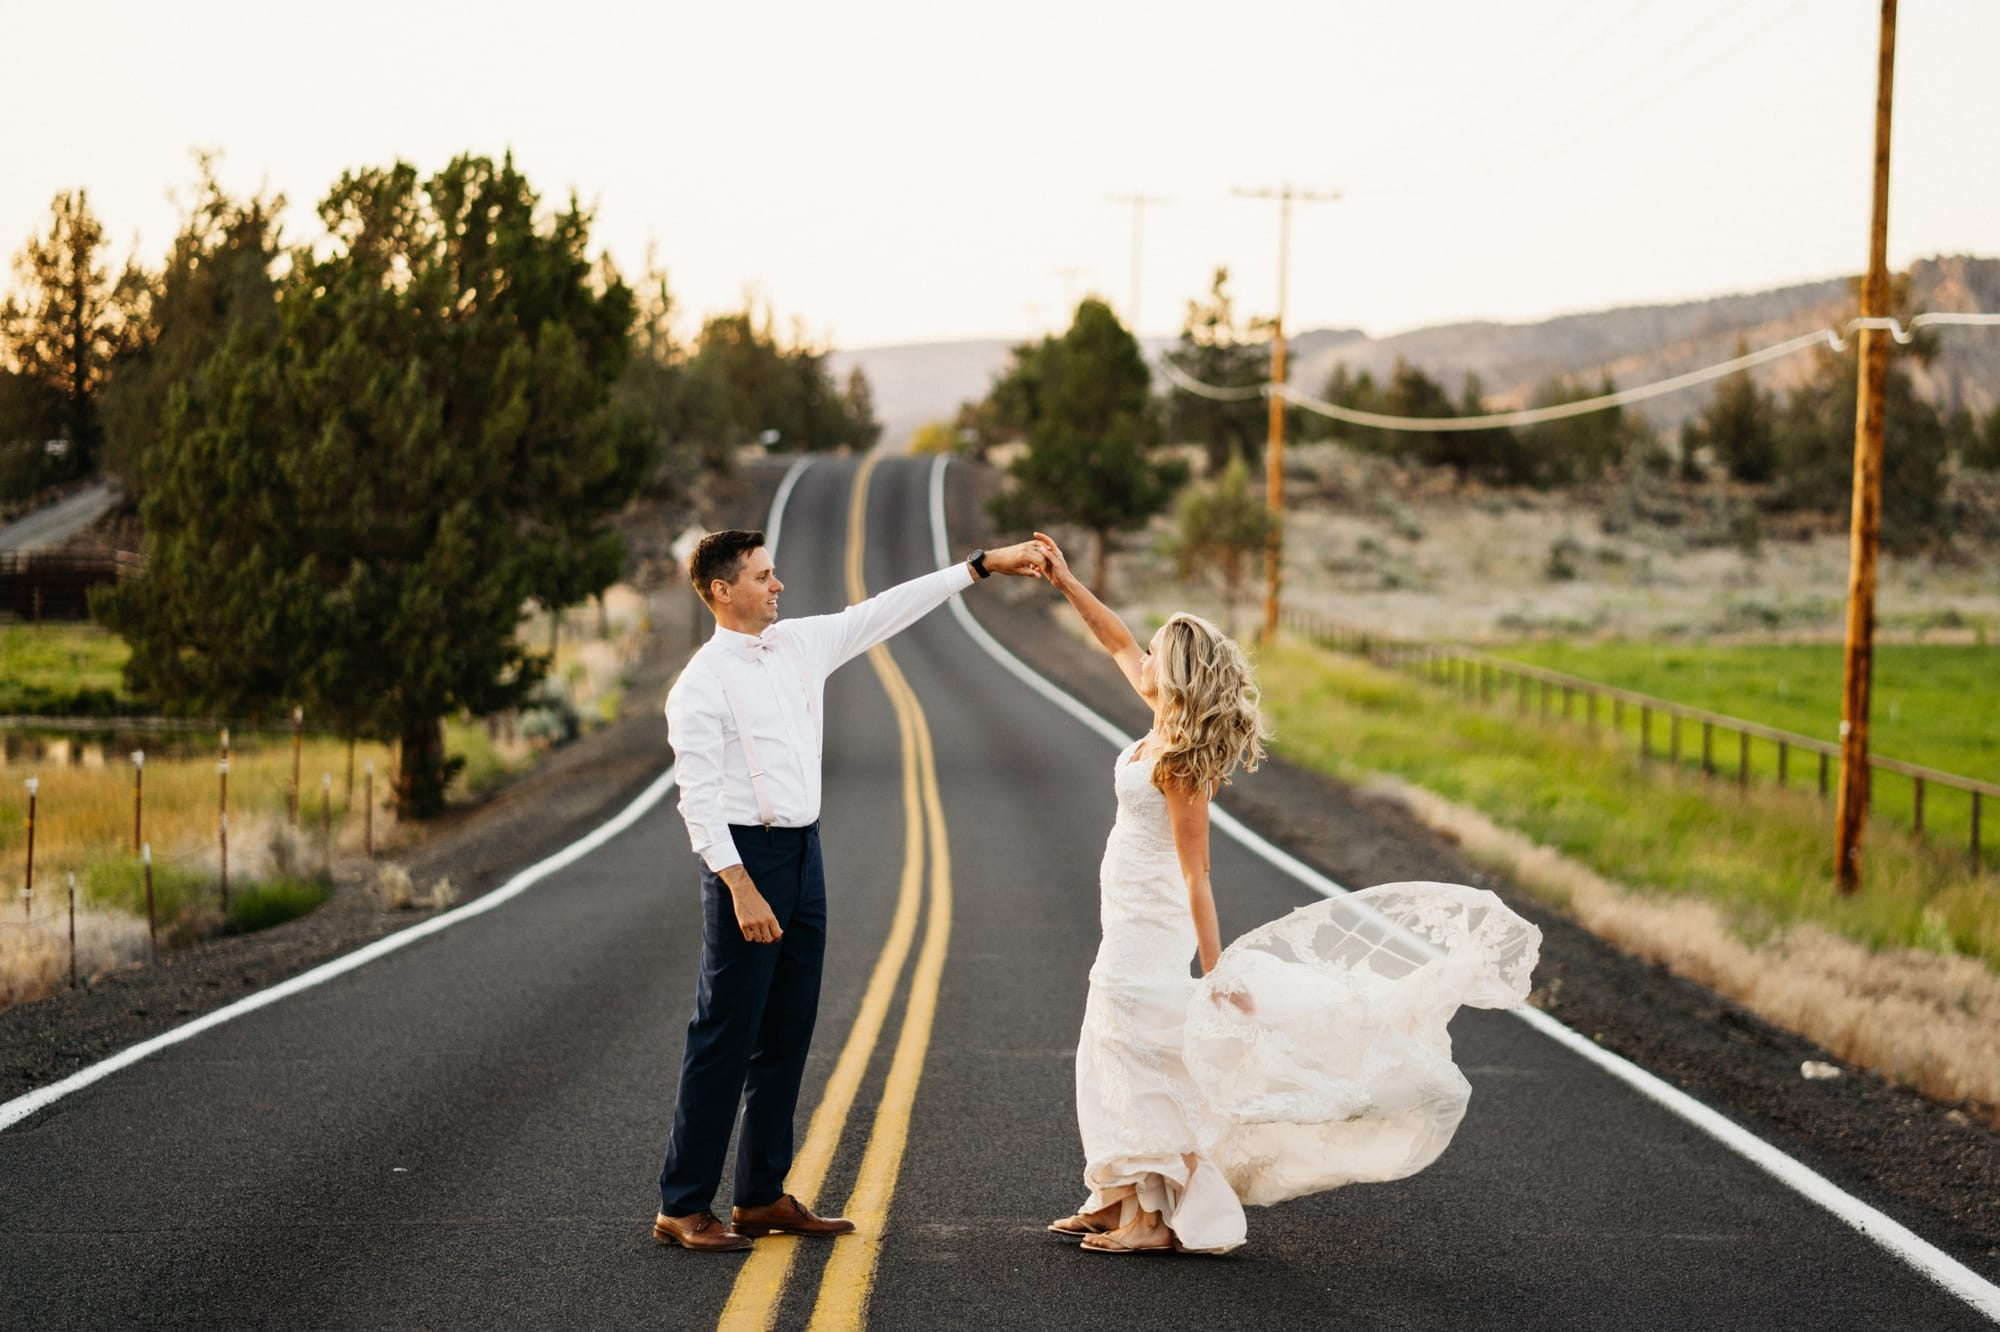 Smith Rock Elopement Venues